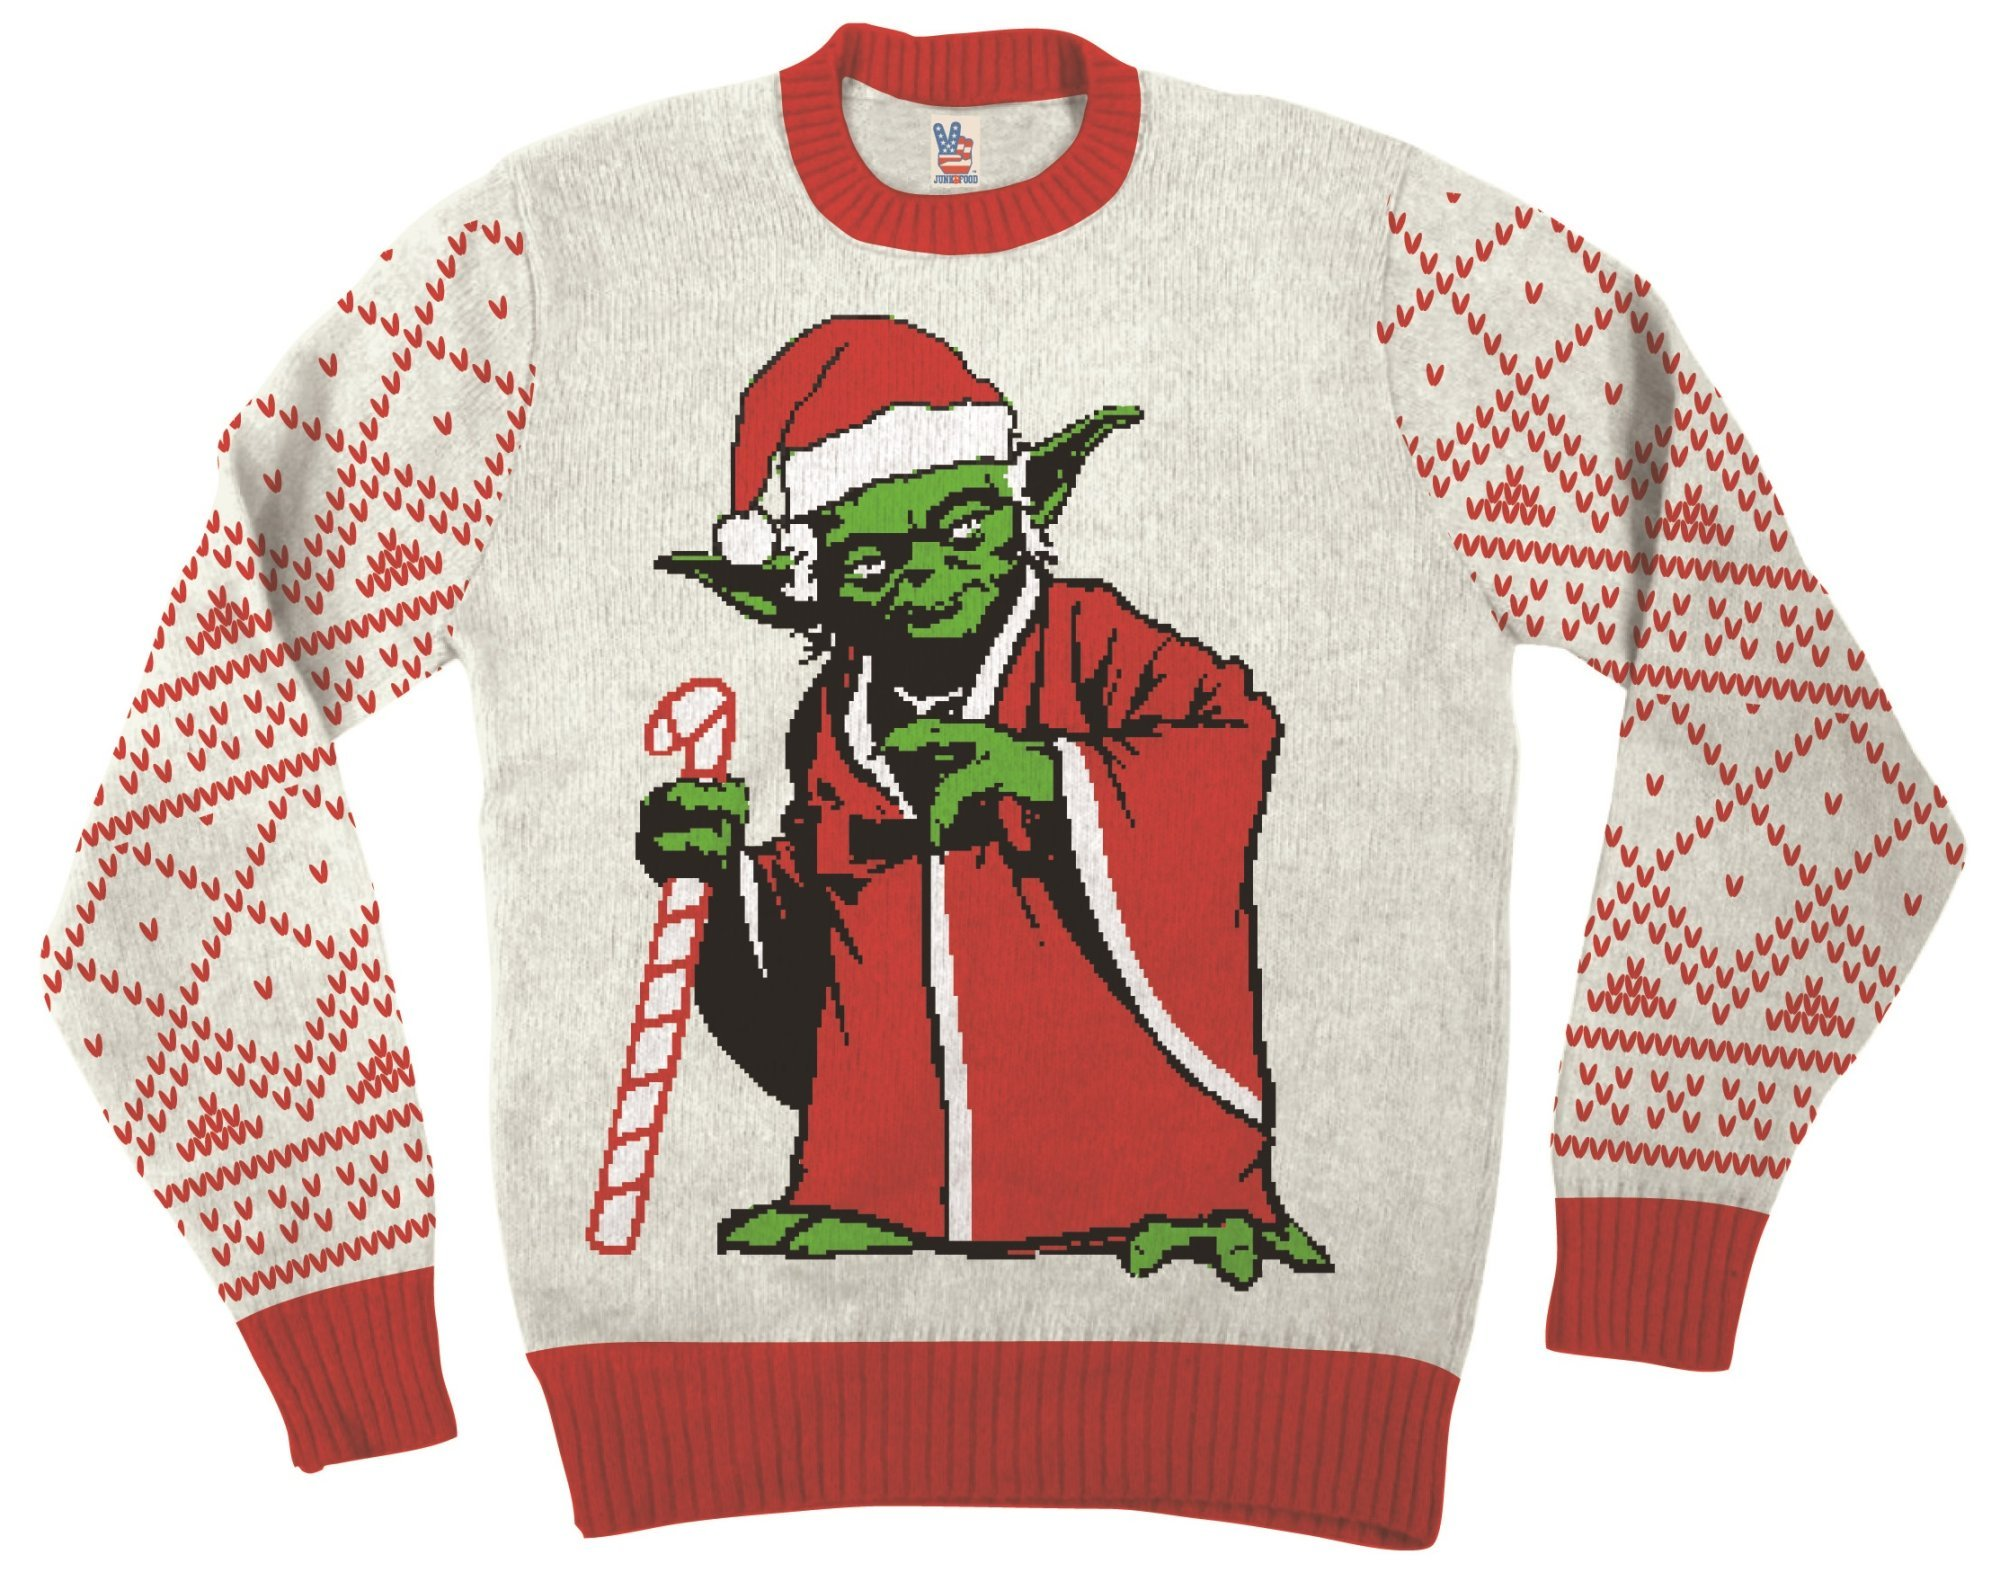 Are These Star Wars Sweaters Ugly Enough for Christmas? - Bloomberg